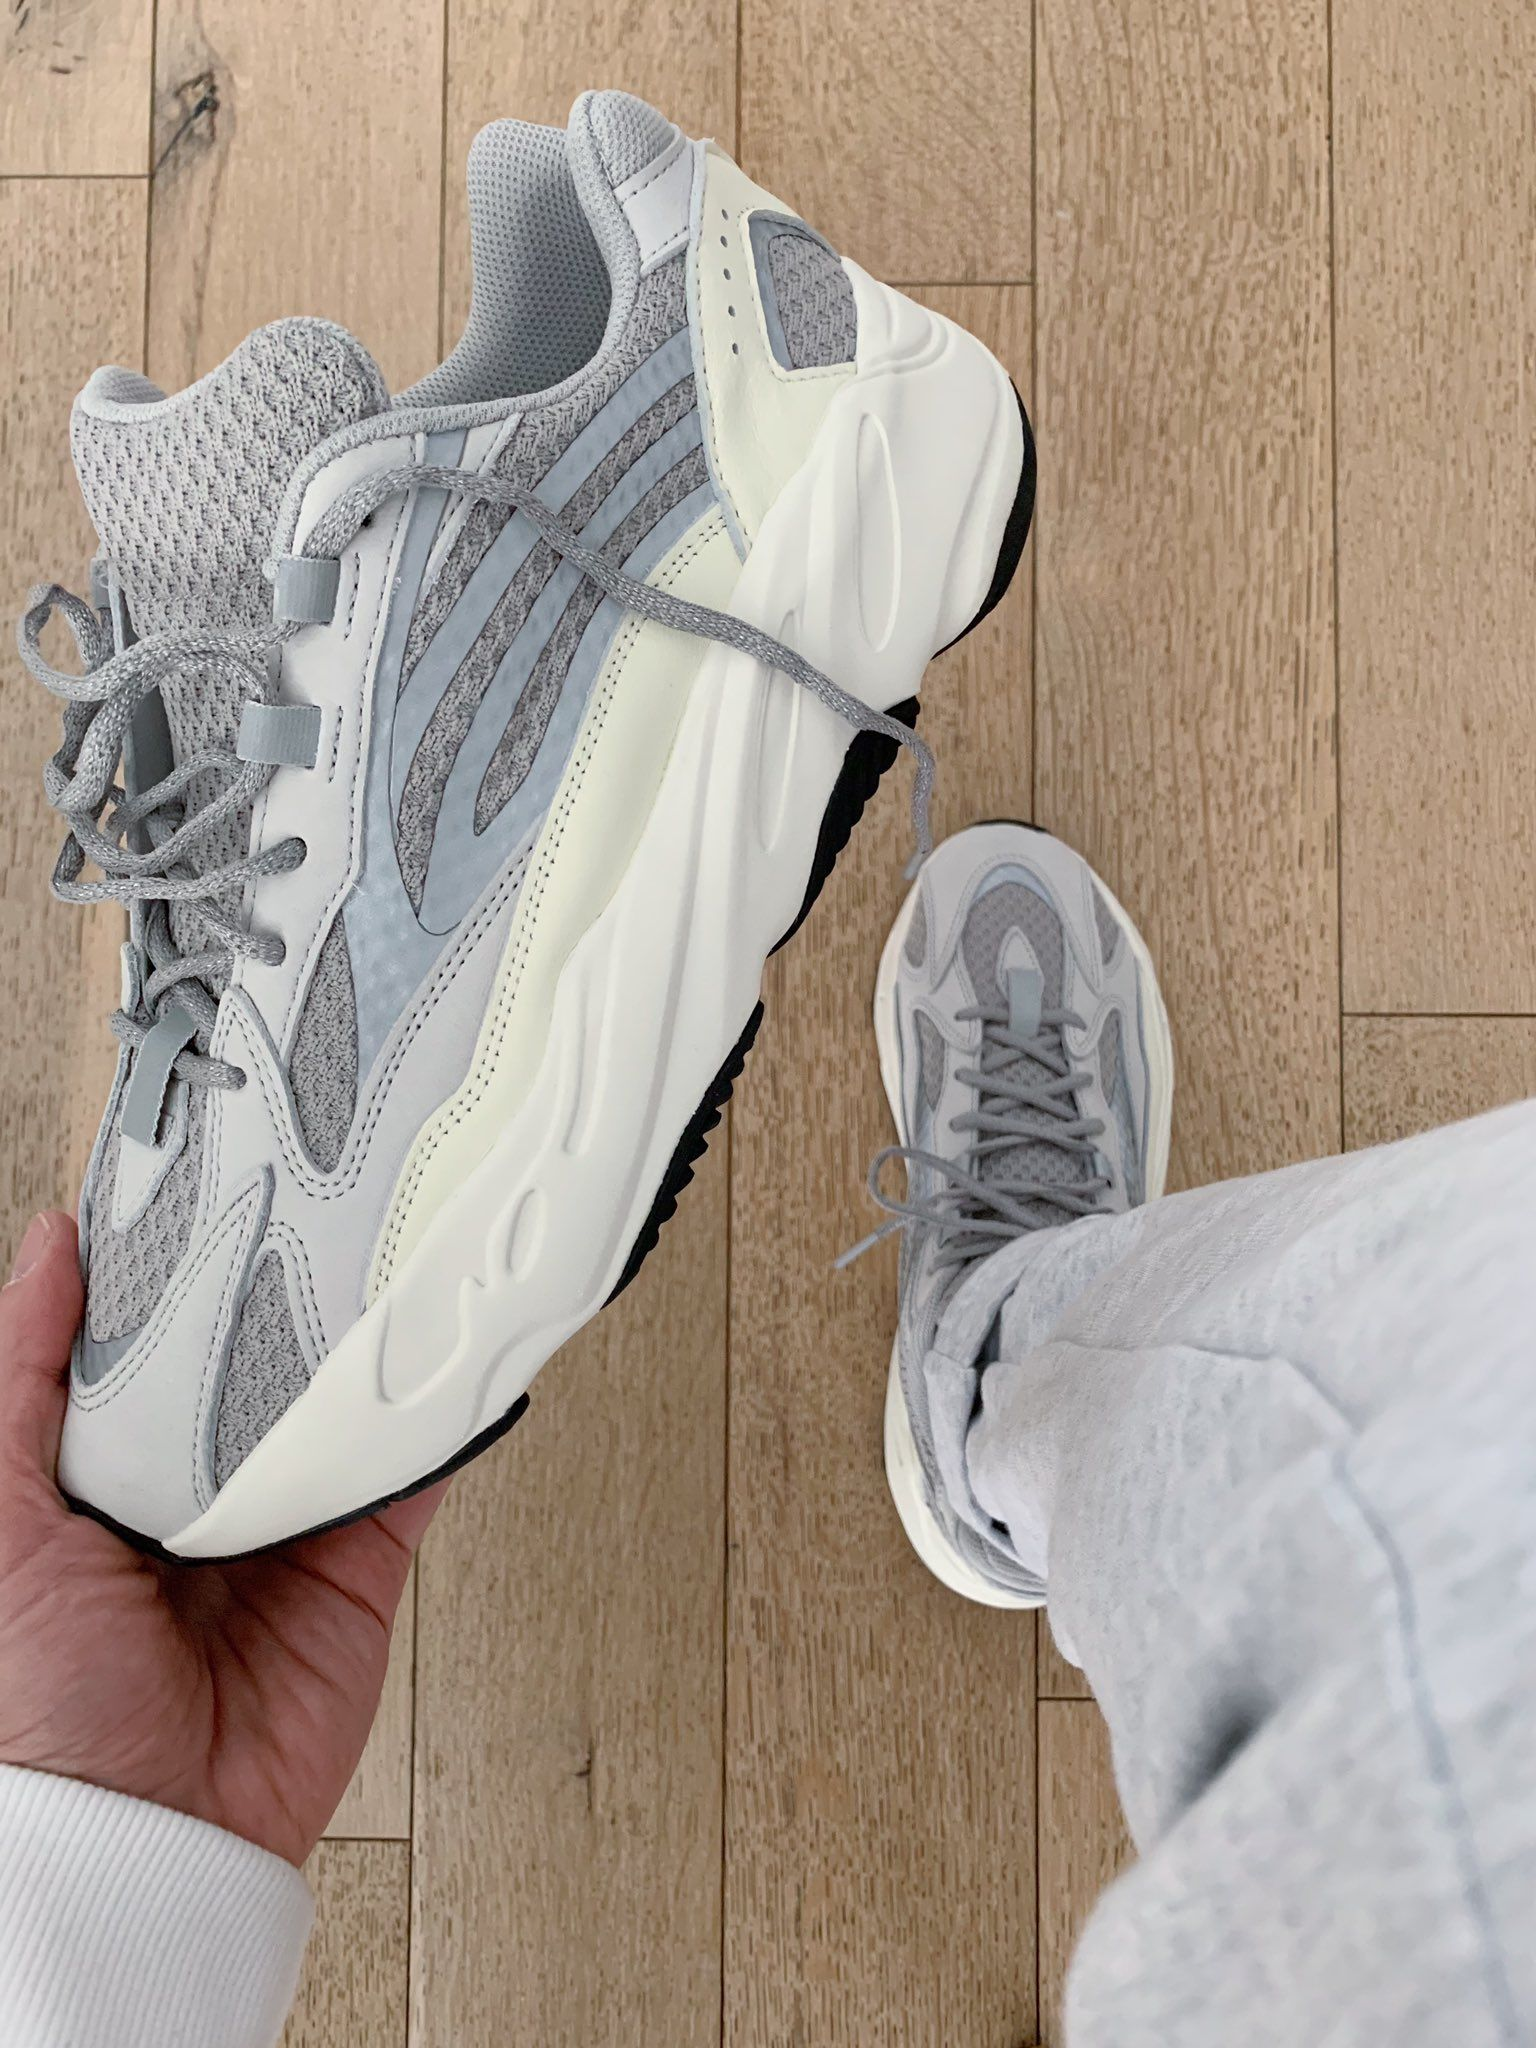 Ronnie Fieg on in 2019 | Yeezy sneakers, Yeezy shoes, Yeezy